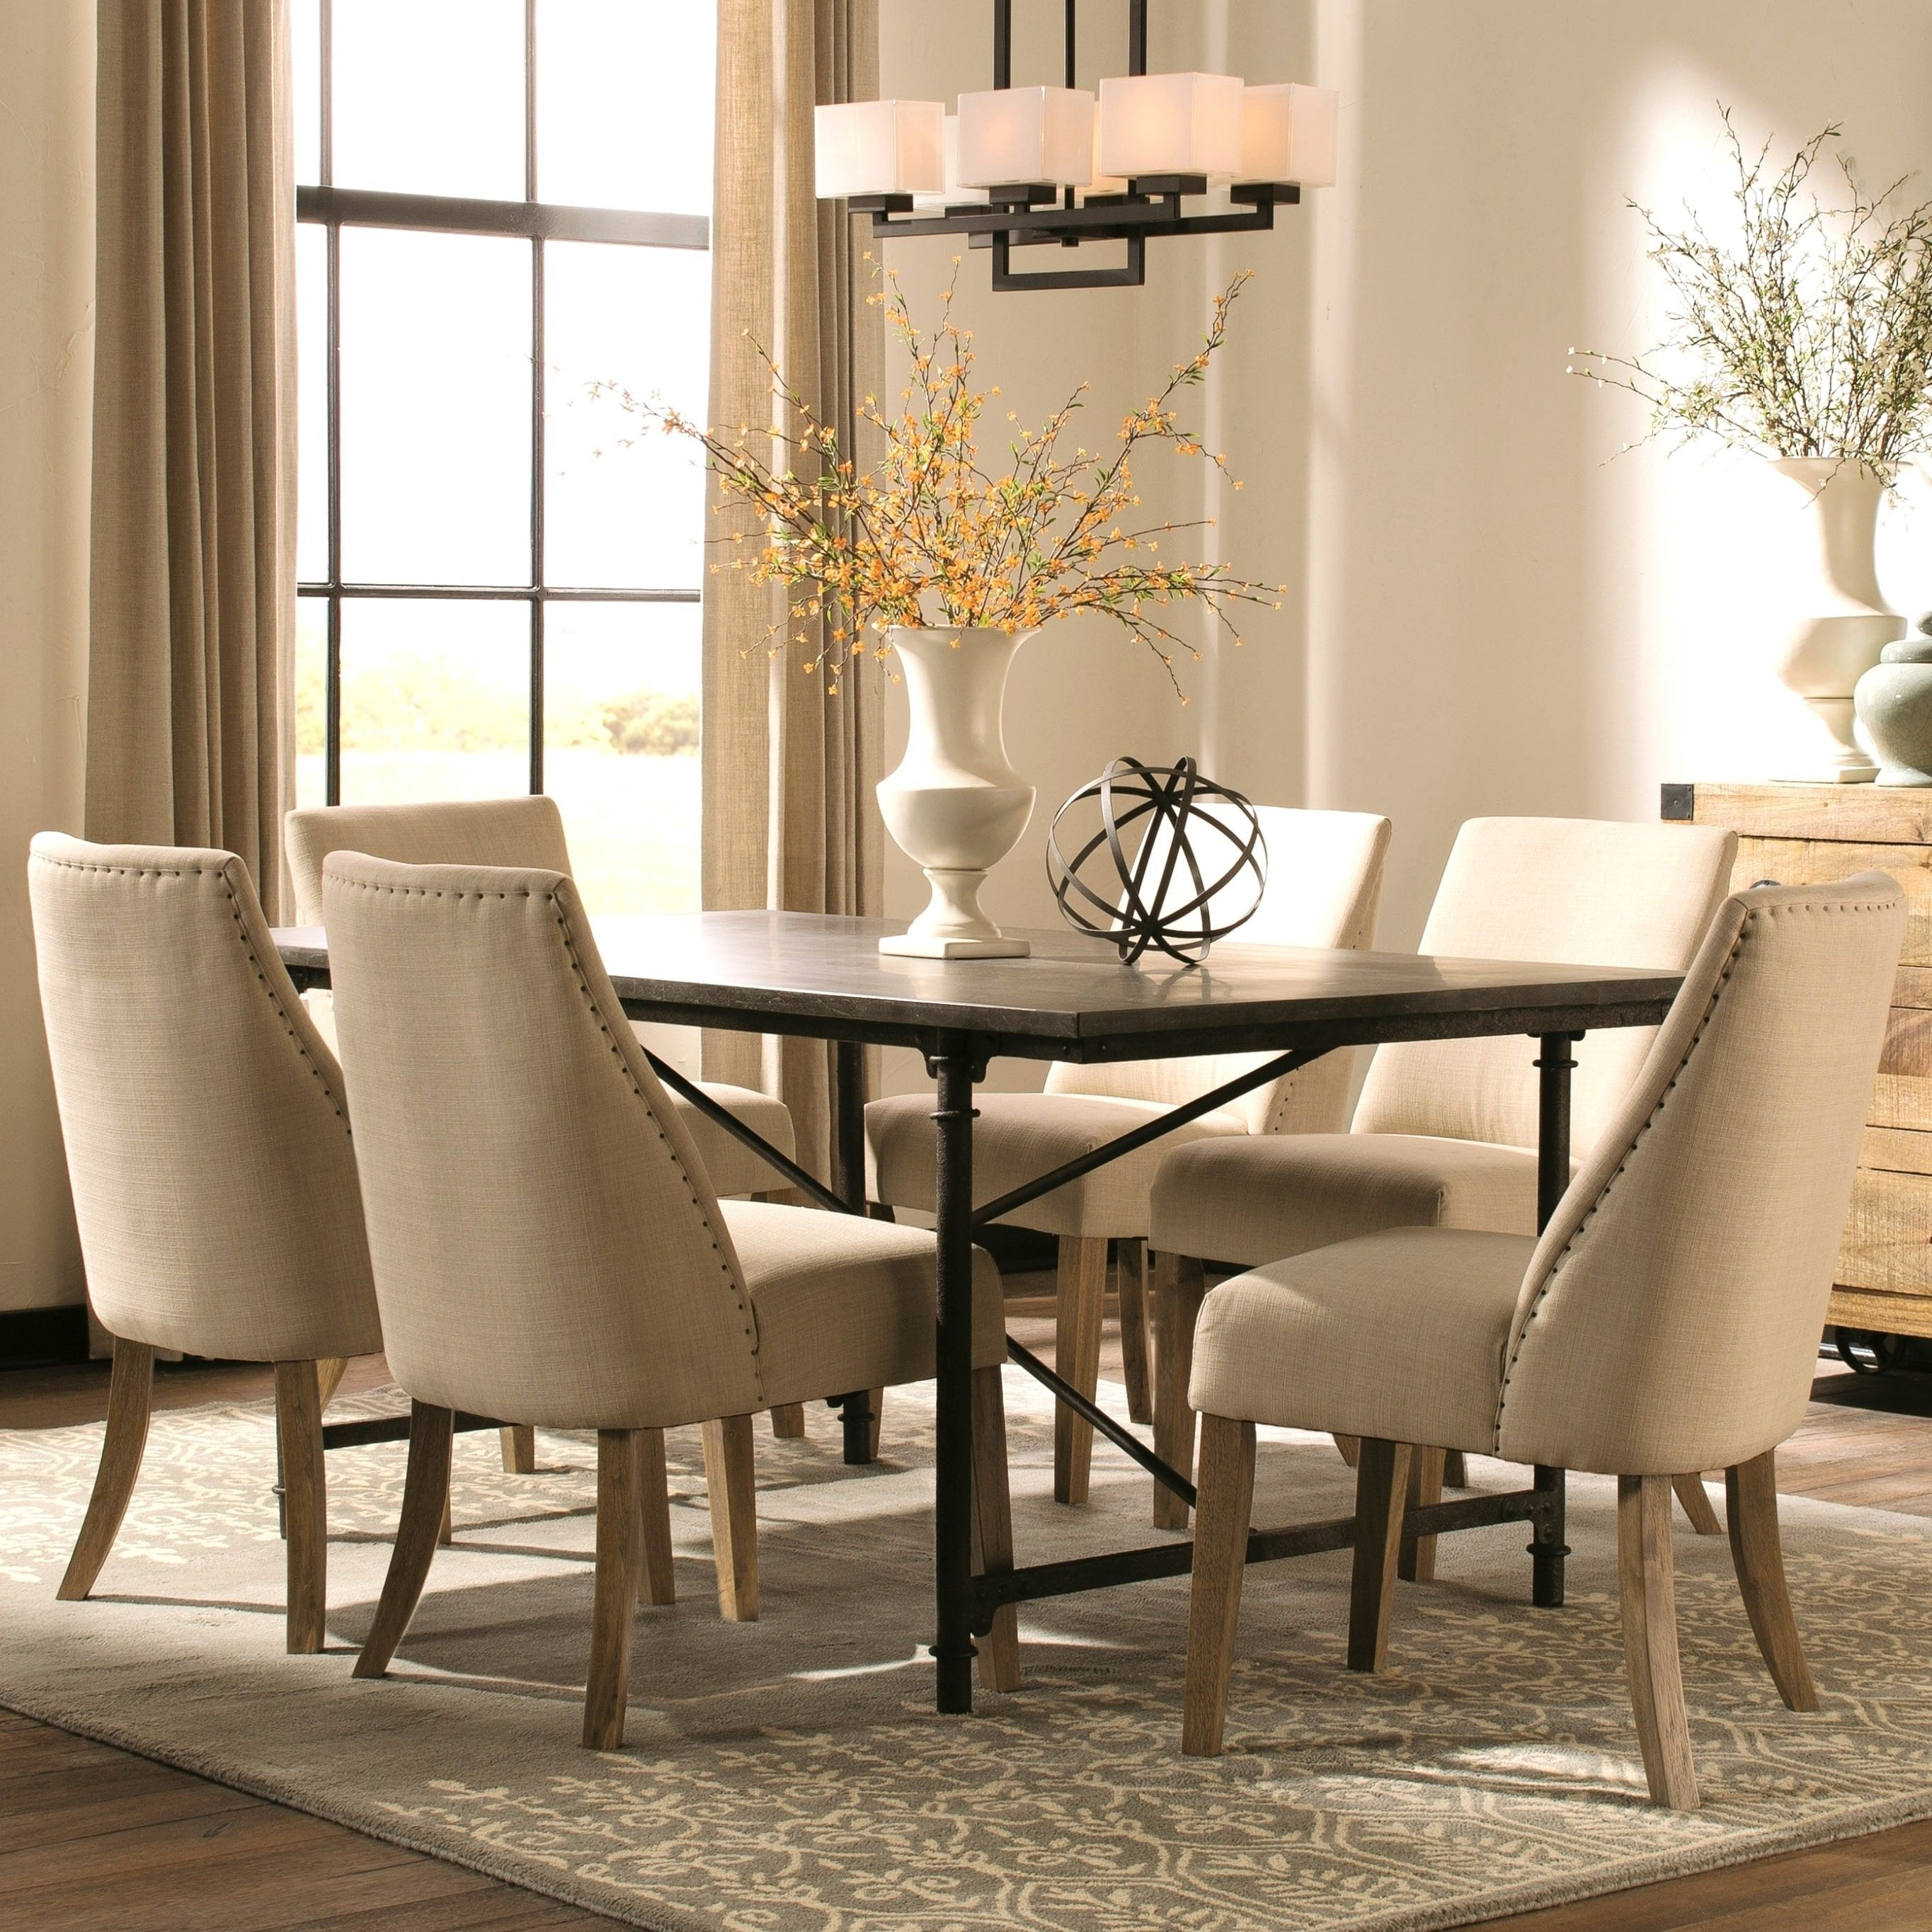 Modern Vintage Industrial Style Natural Blue Stone And Metal Dining Set 1 Table 4 Chairs Beige Size 5 Piece Sets